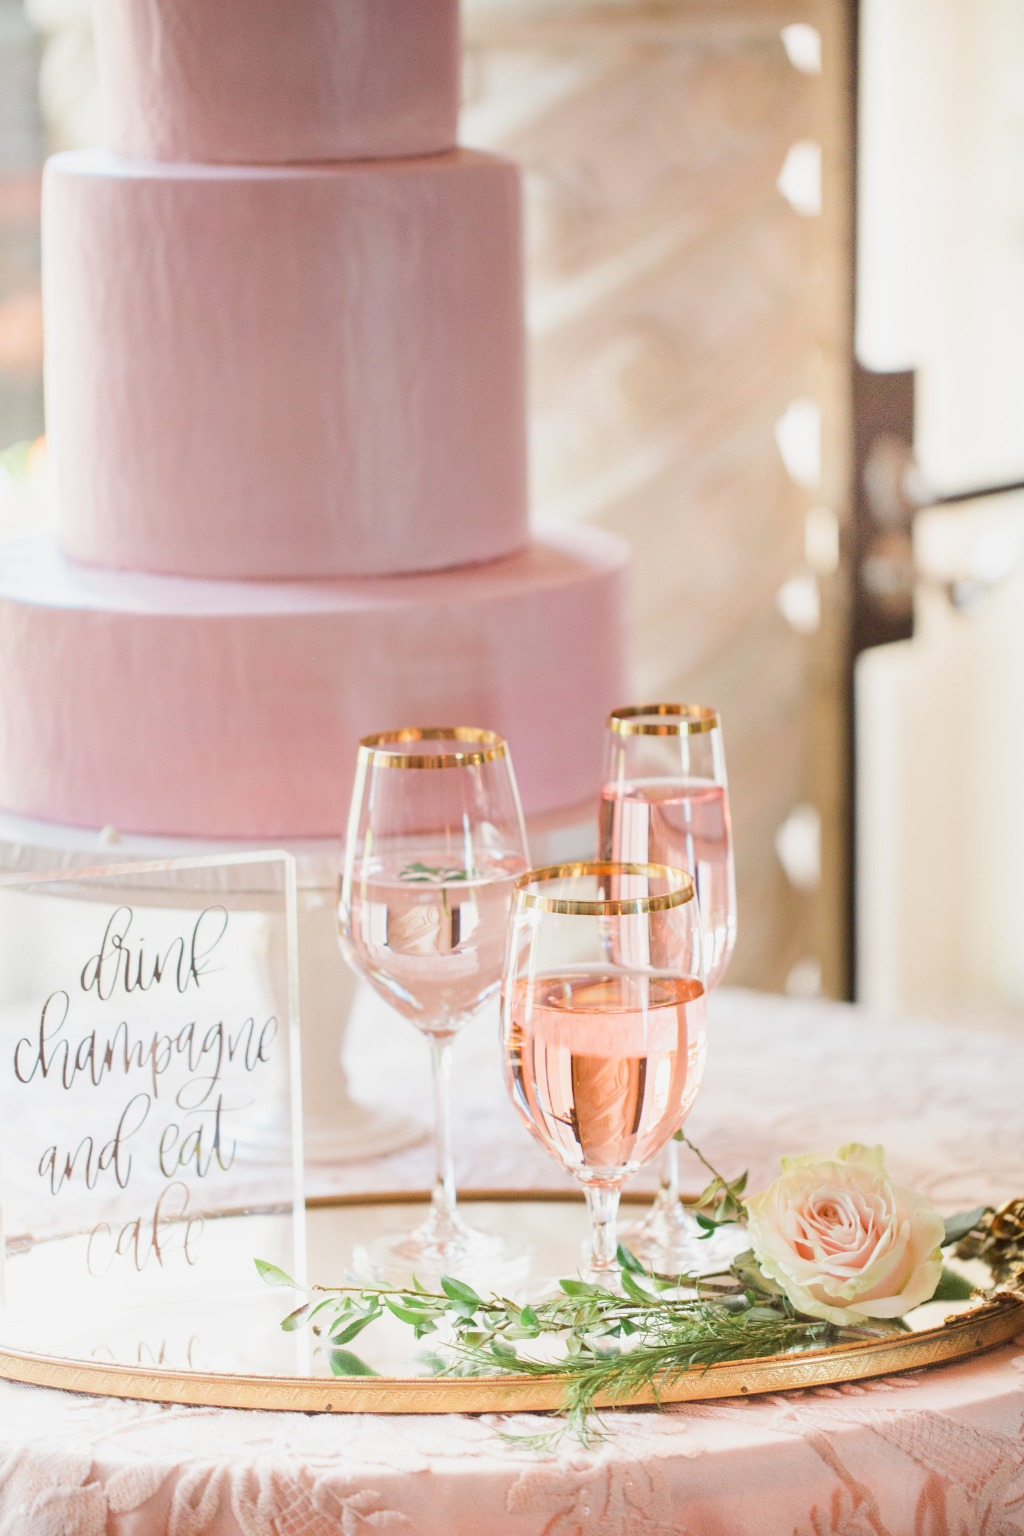 A wedding day to-do: Drink champagne and eat cake!